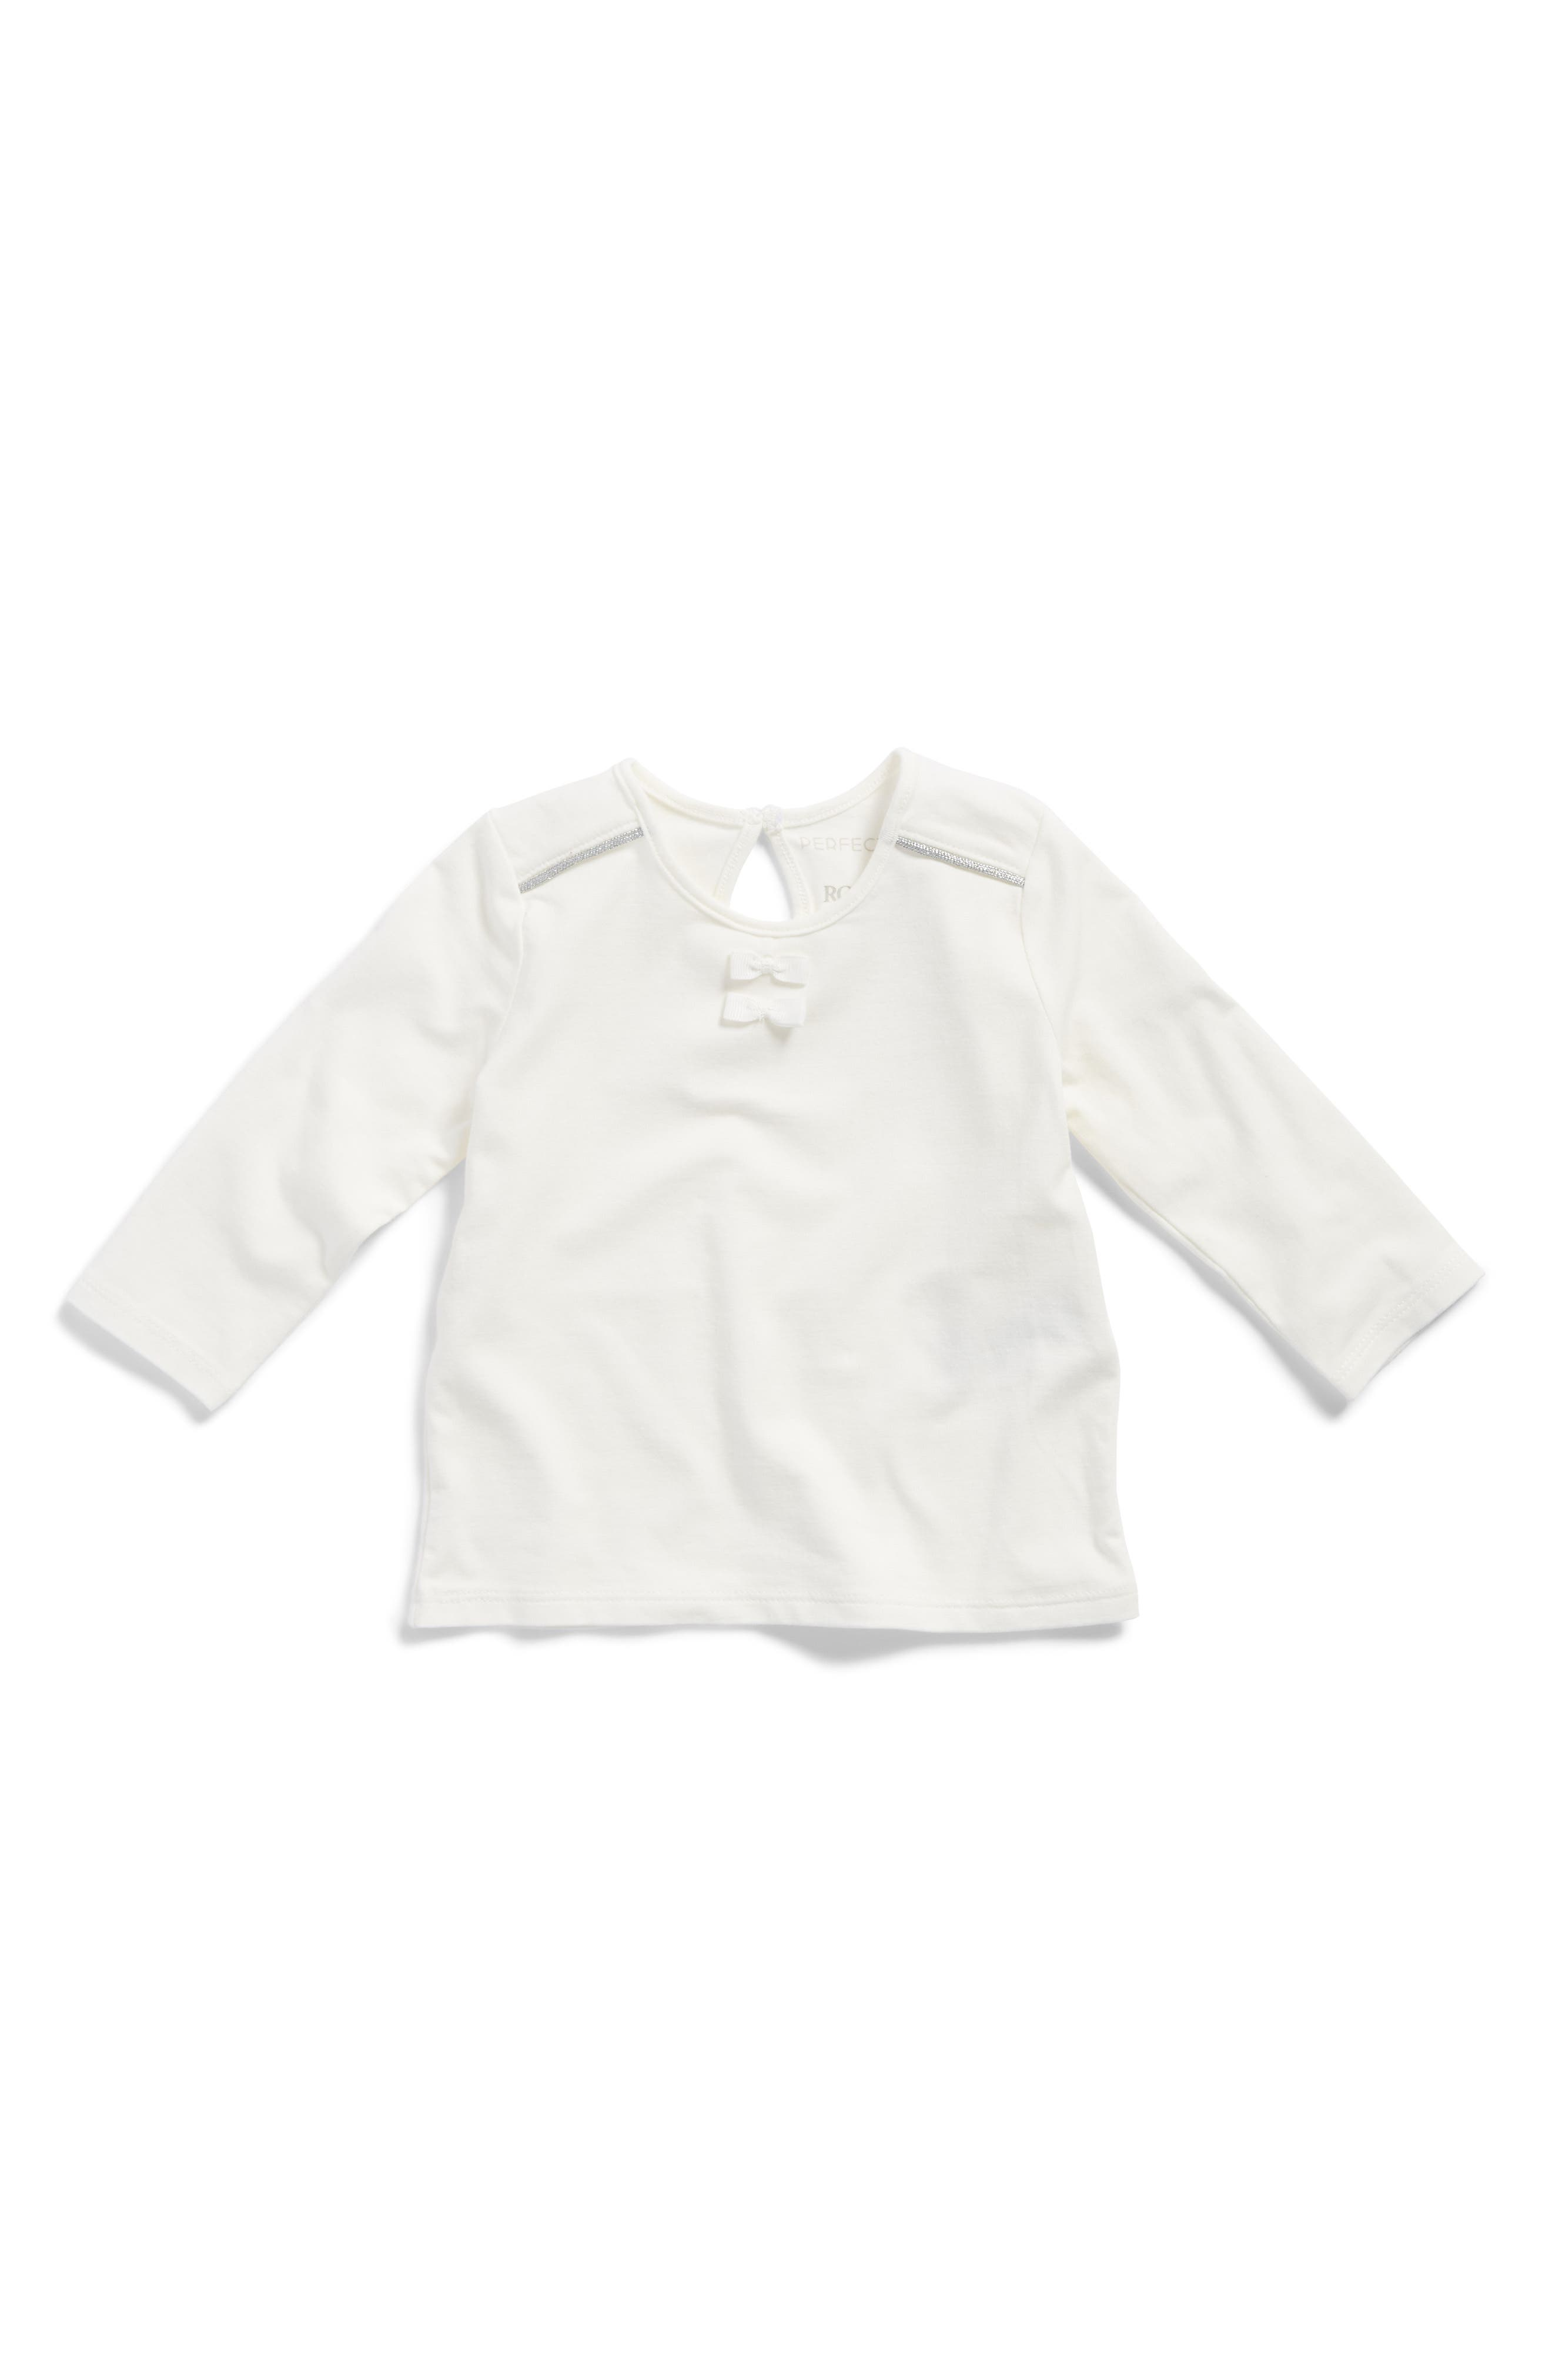 Main Image - Robeez® Bow Trim Knit Top (Baby Girls)